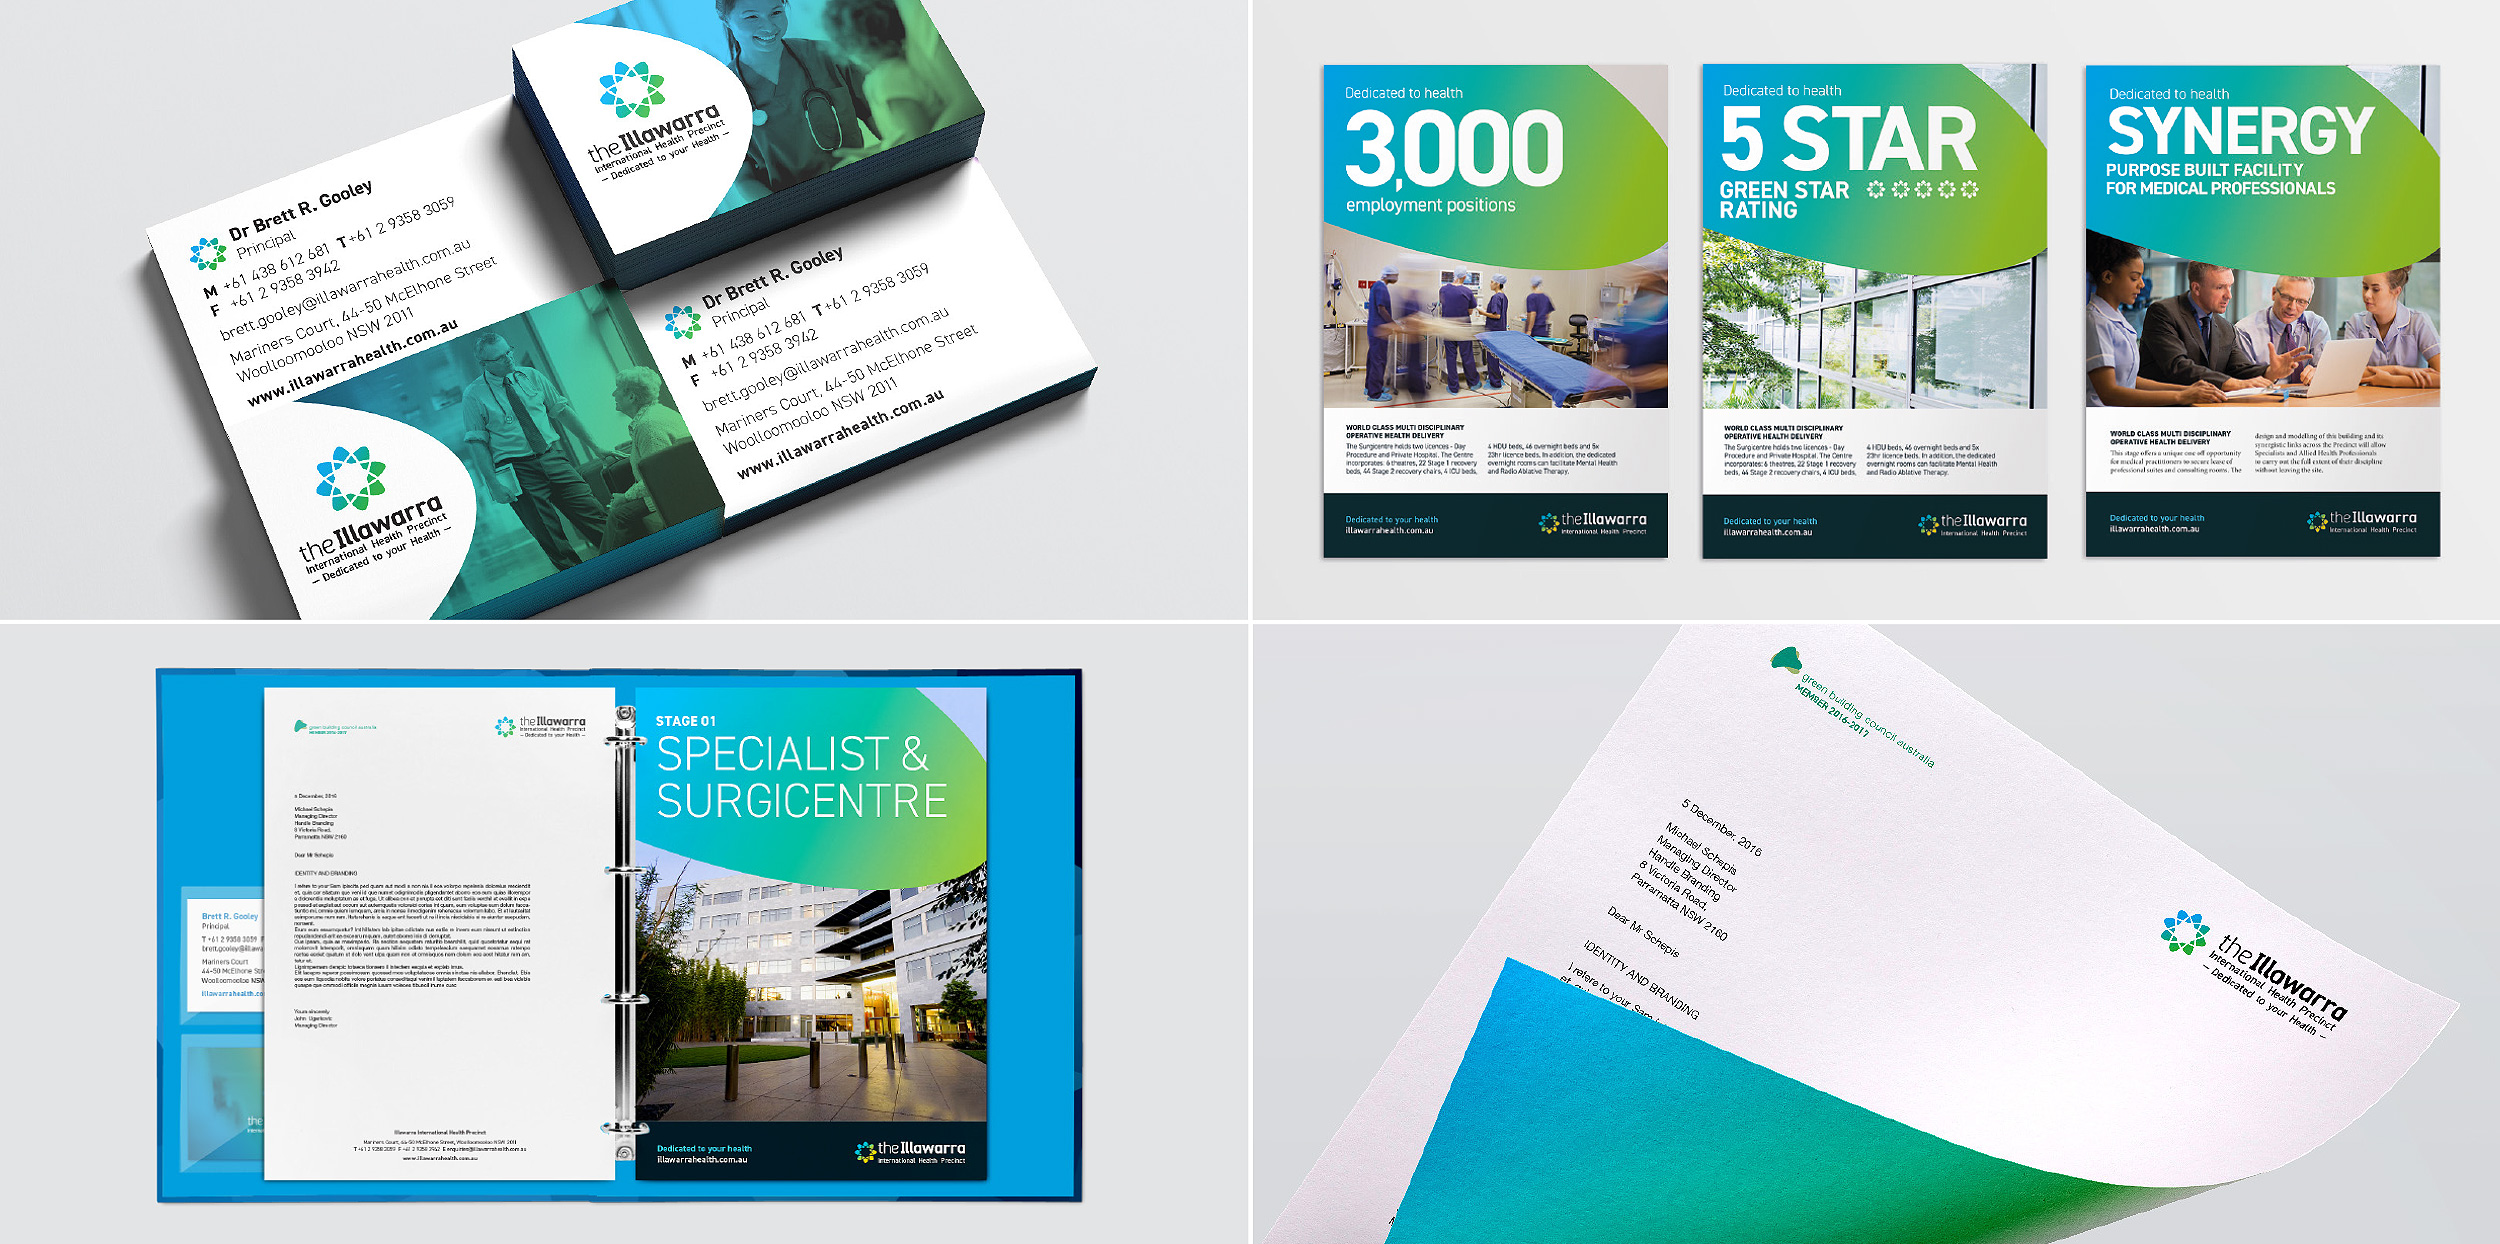 Illawarra-International-Health-Precinct-Hospital-Branding-Handle-Sydney-Branding_7.jpg